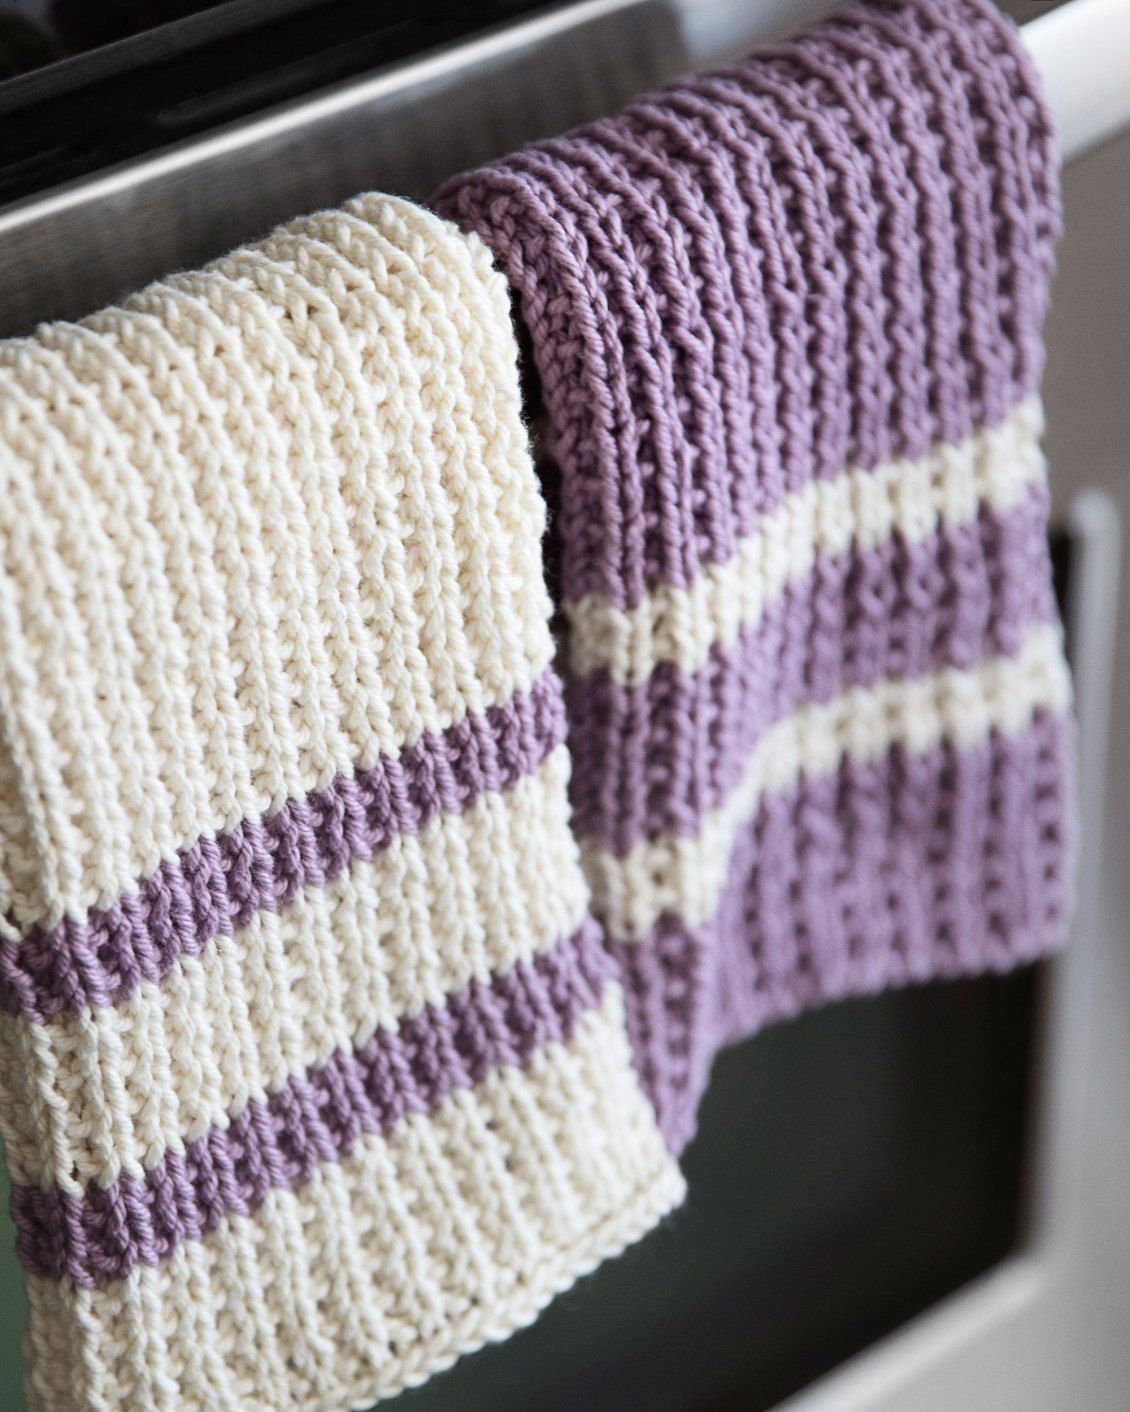 Leelee Knits » Blog Archive Knit Dishcloth Pattern - Leelee Knits ...